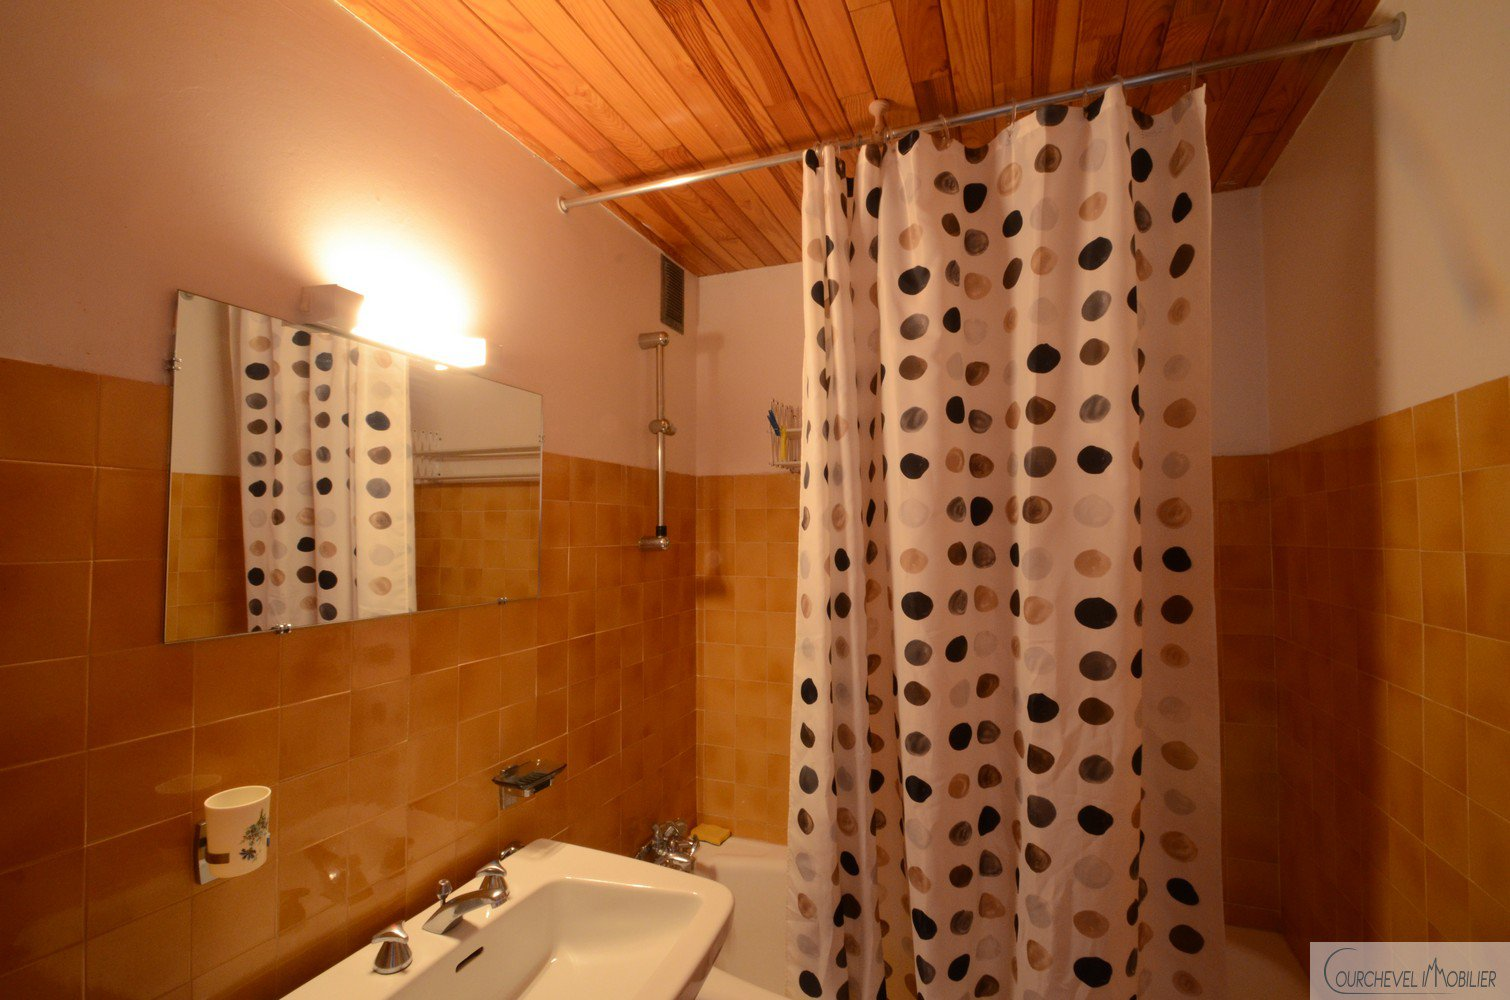 2 bedrooms apartment - Courchevel Moriond